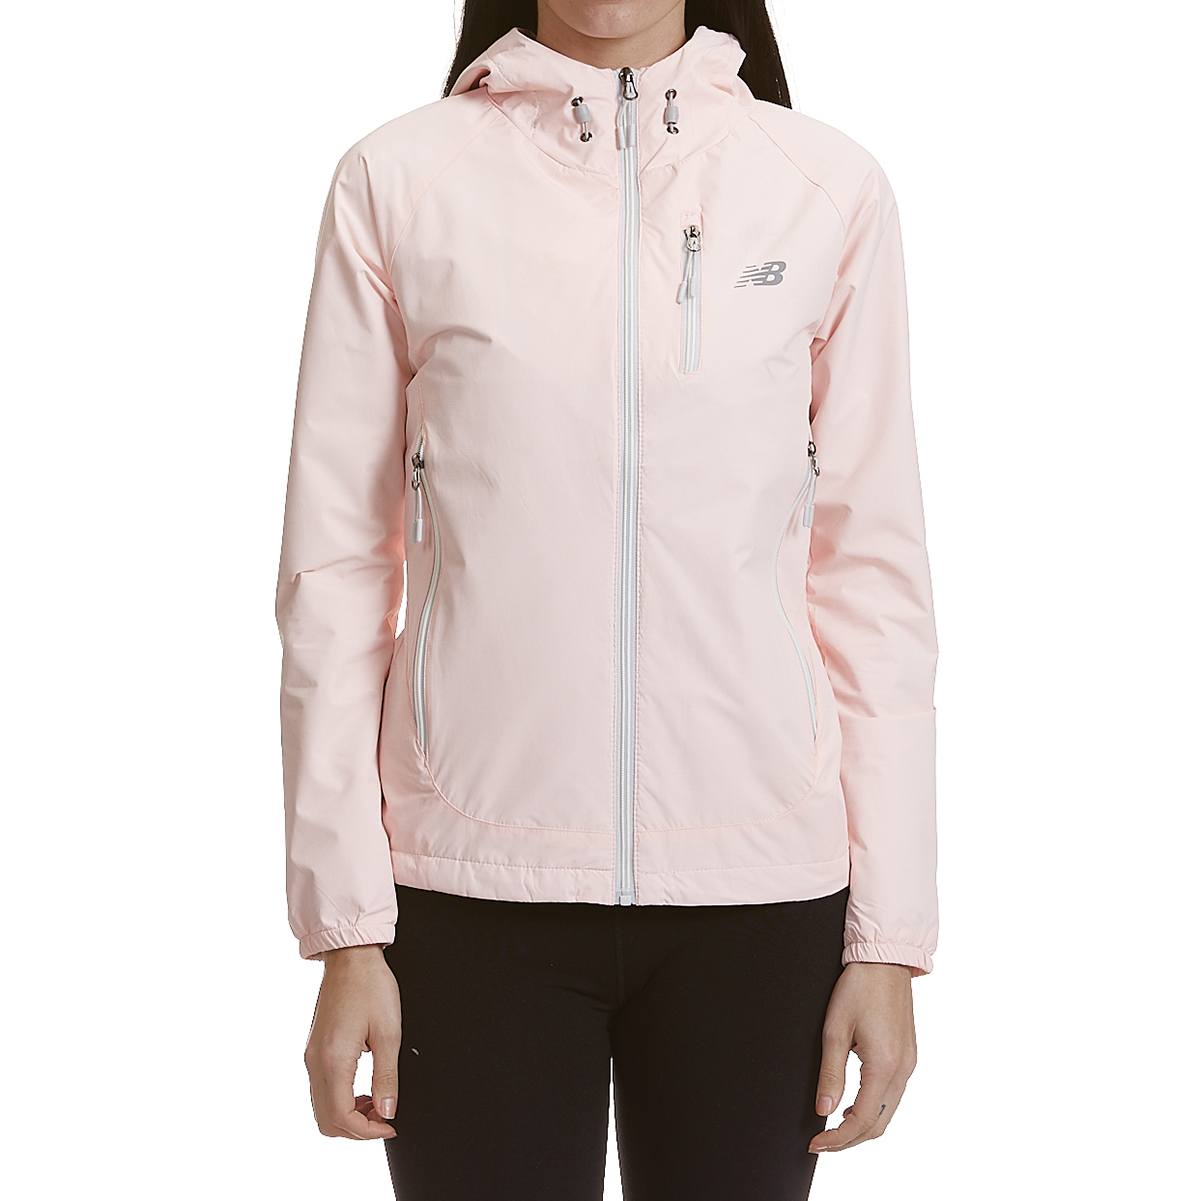 New Balance Women's Solid Dobby Hooded Jacket With Zipped Pockets - White, S